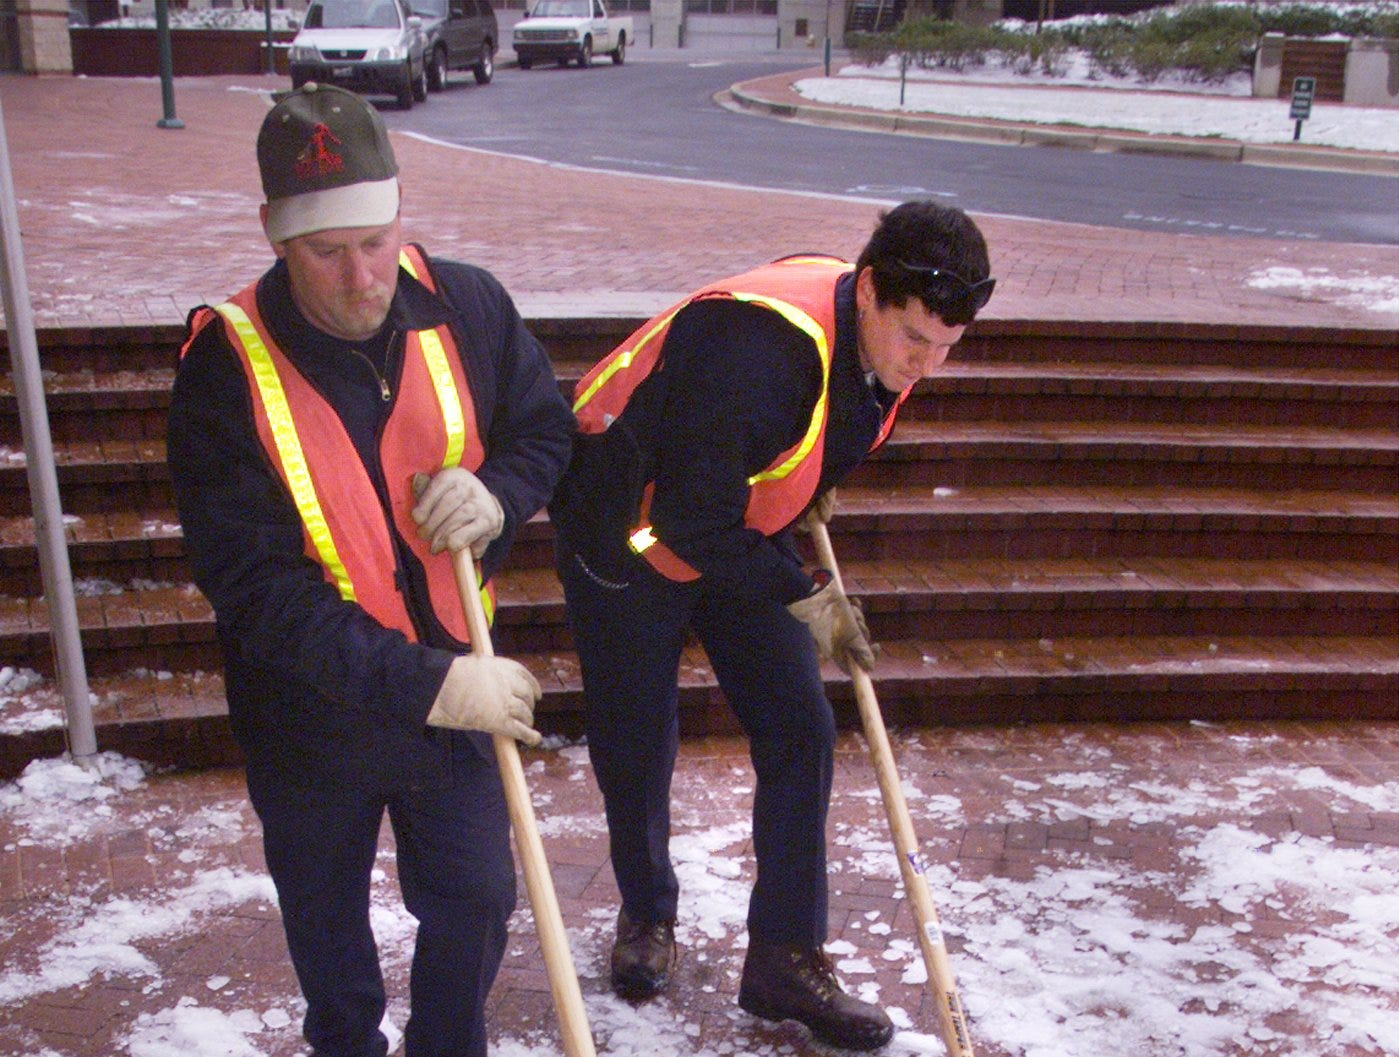 City of Greenville workers Brian Crenshaw, left, and Todd Pannell, right, scrape snow from the sidewalk outside the Peace Center in downtown Greenville Monday January 24, 2000. They were working with Peace Center employees to clear the area of dangerous ice.